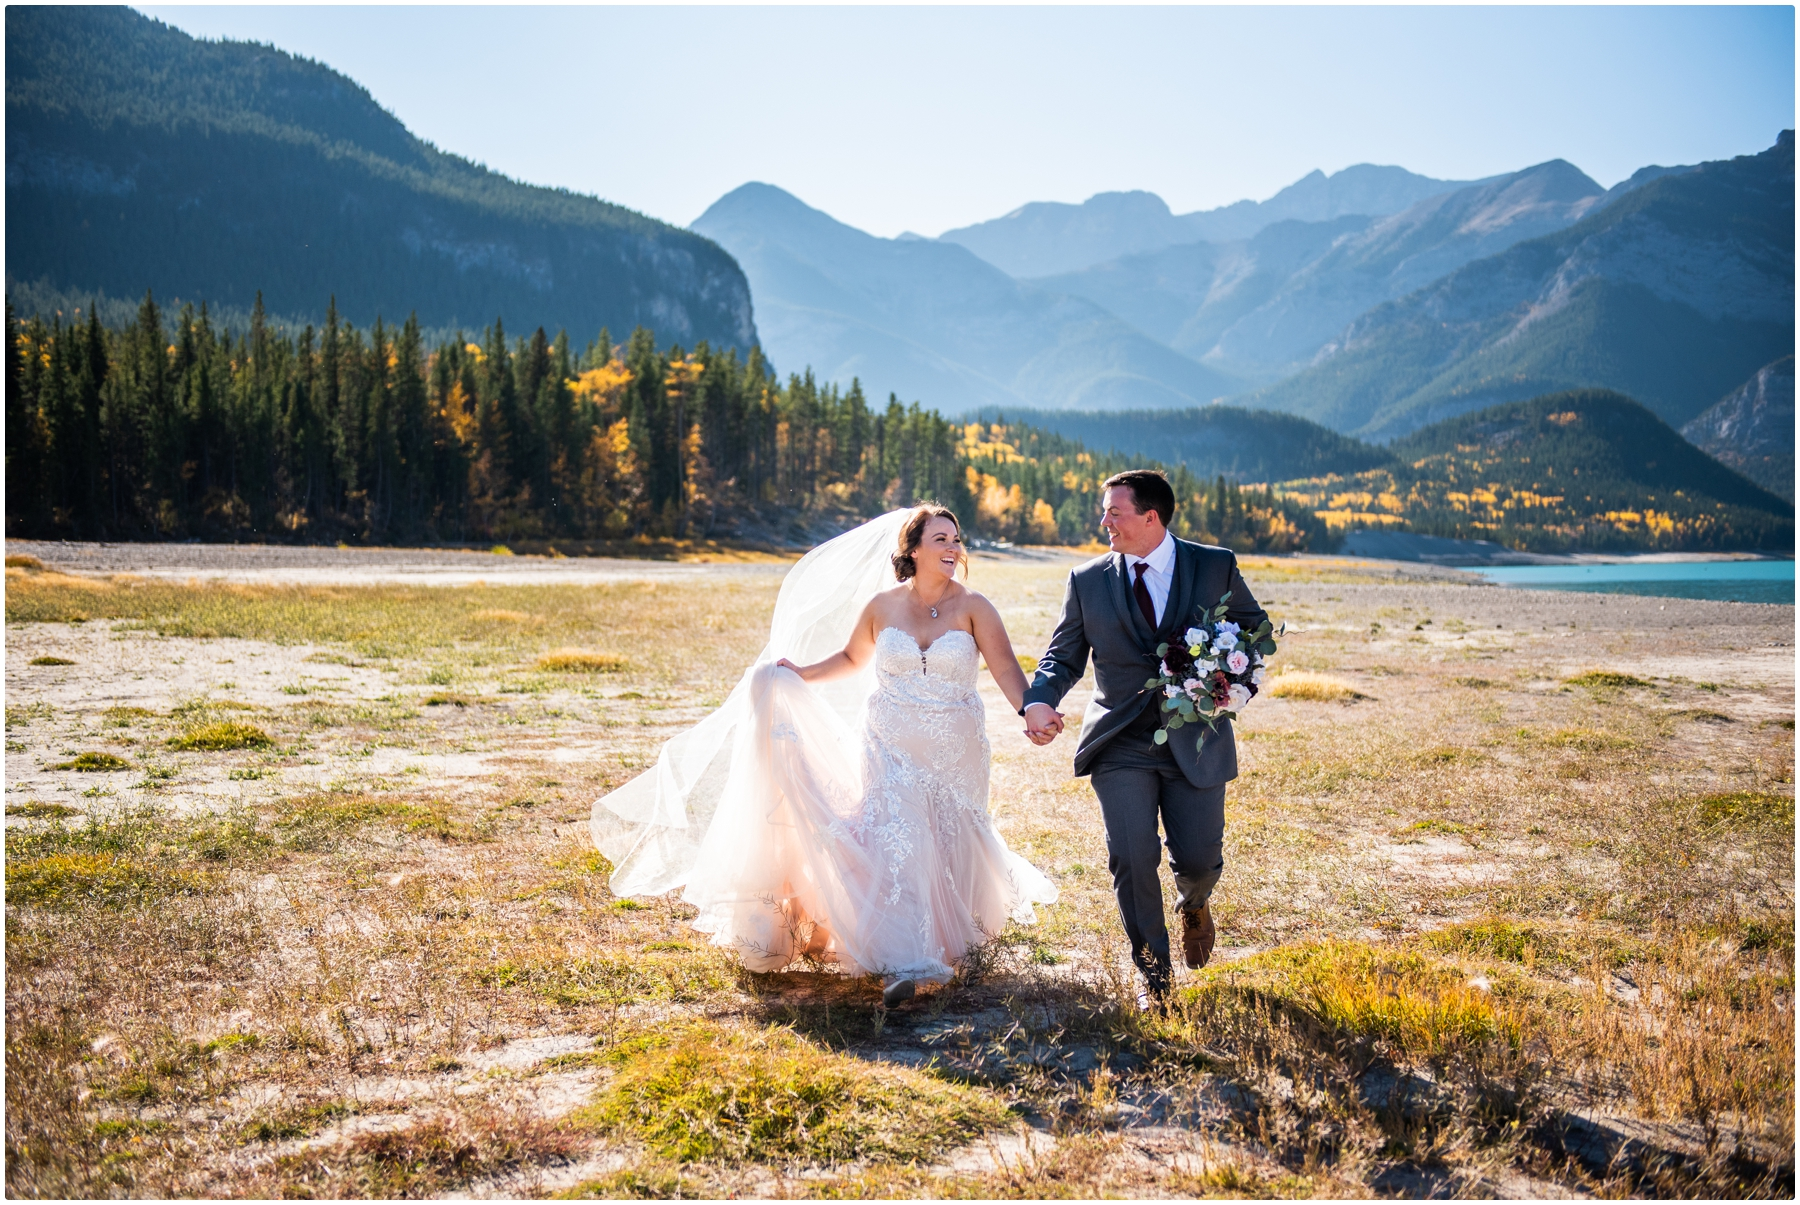 Canmore Wedding Photographer- Rocky Mountain Intimate Elopement Photos